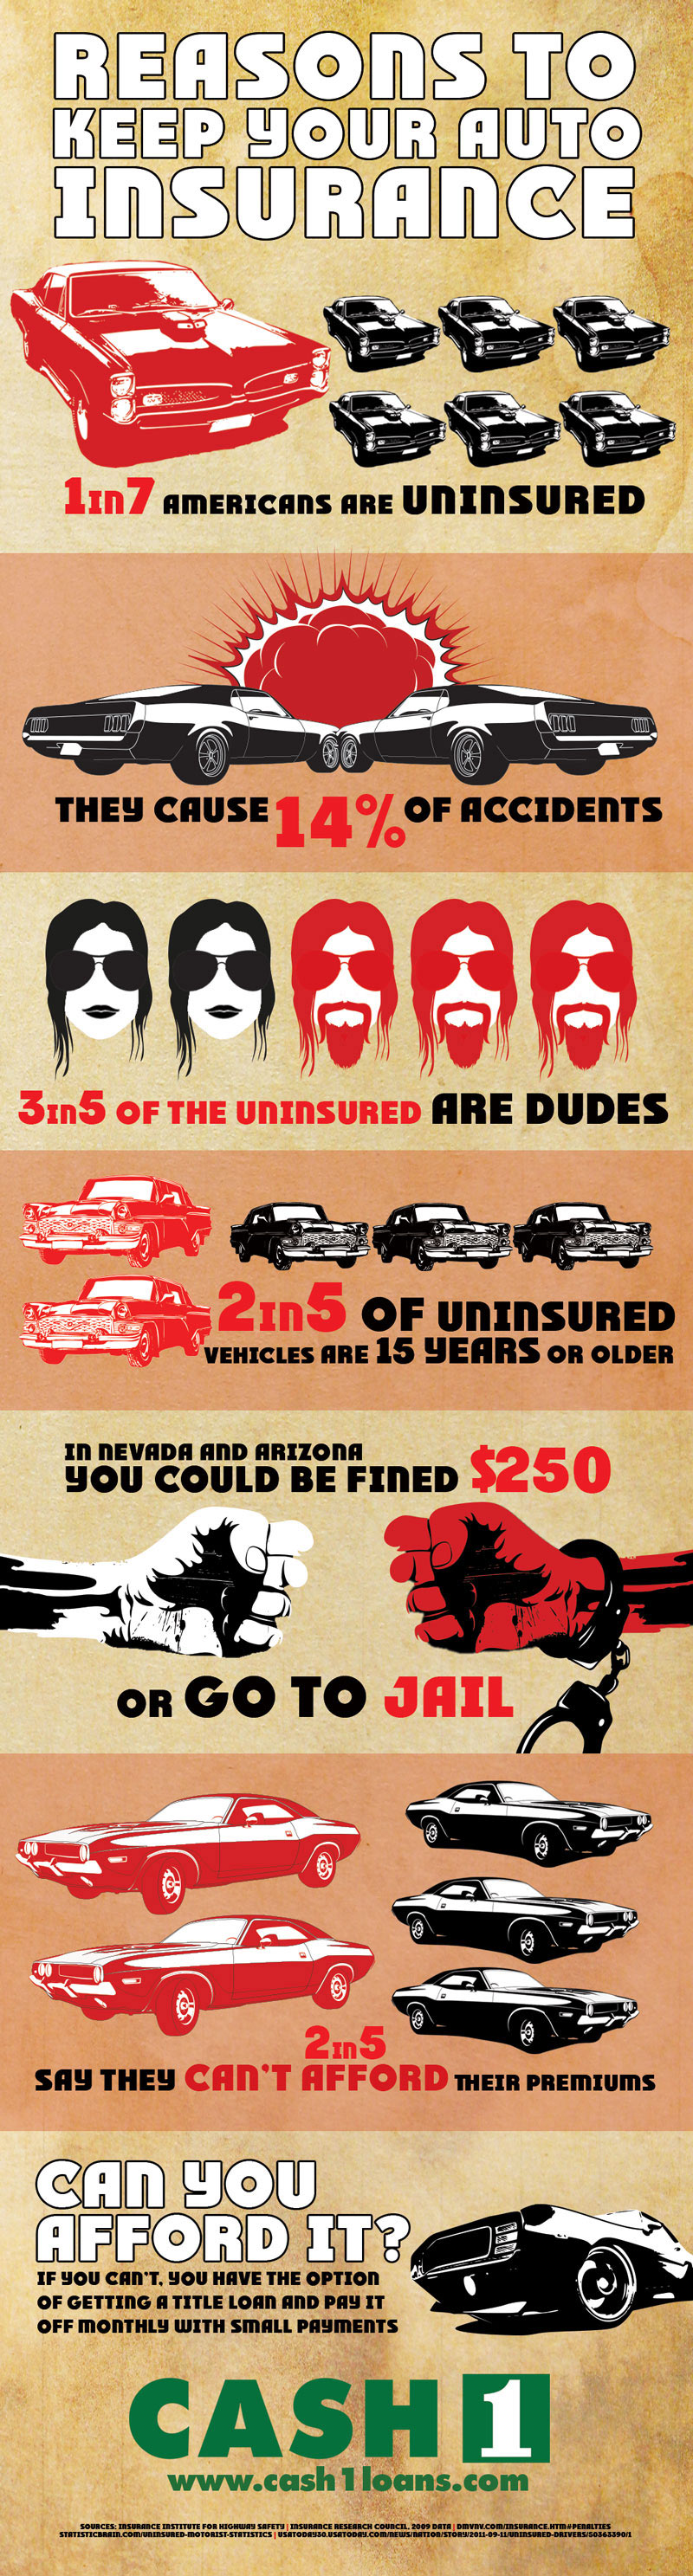 Infographic on Reasons To Keep Your Auto Insurance by CASH1